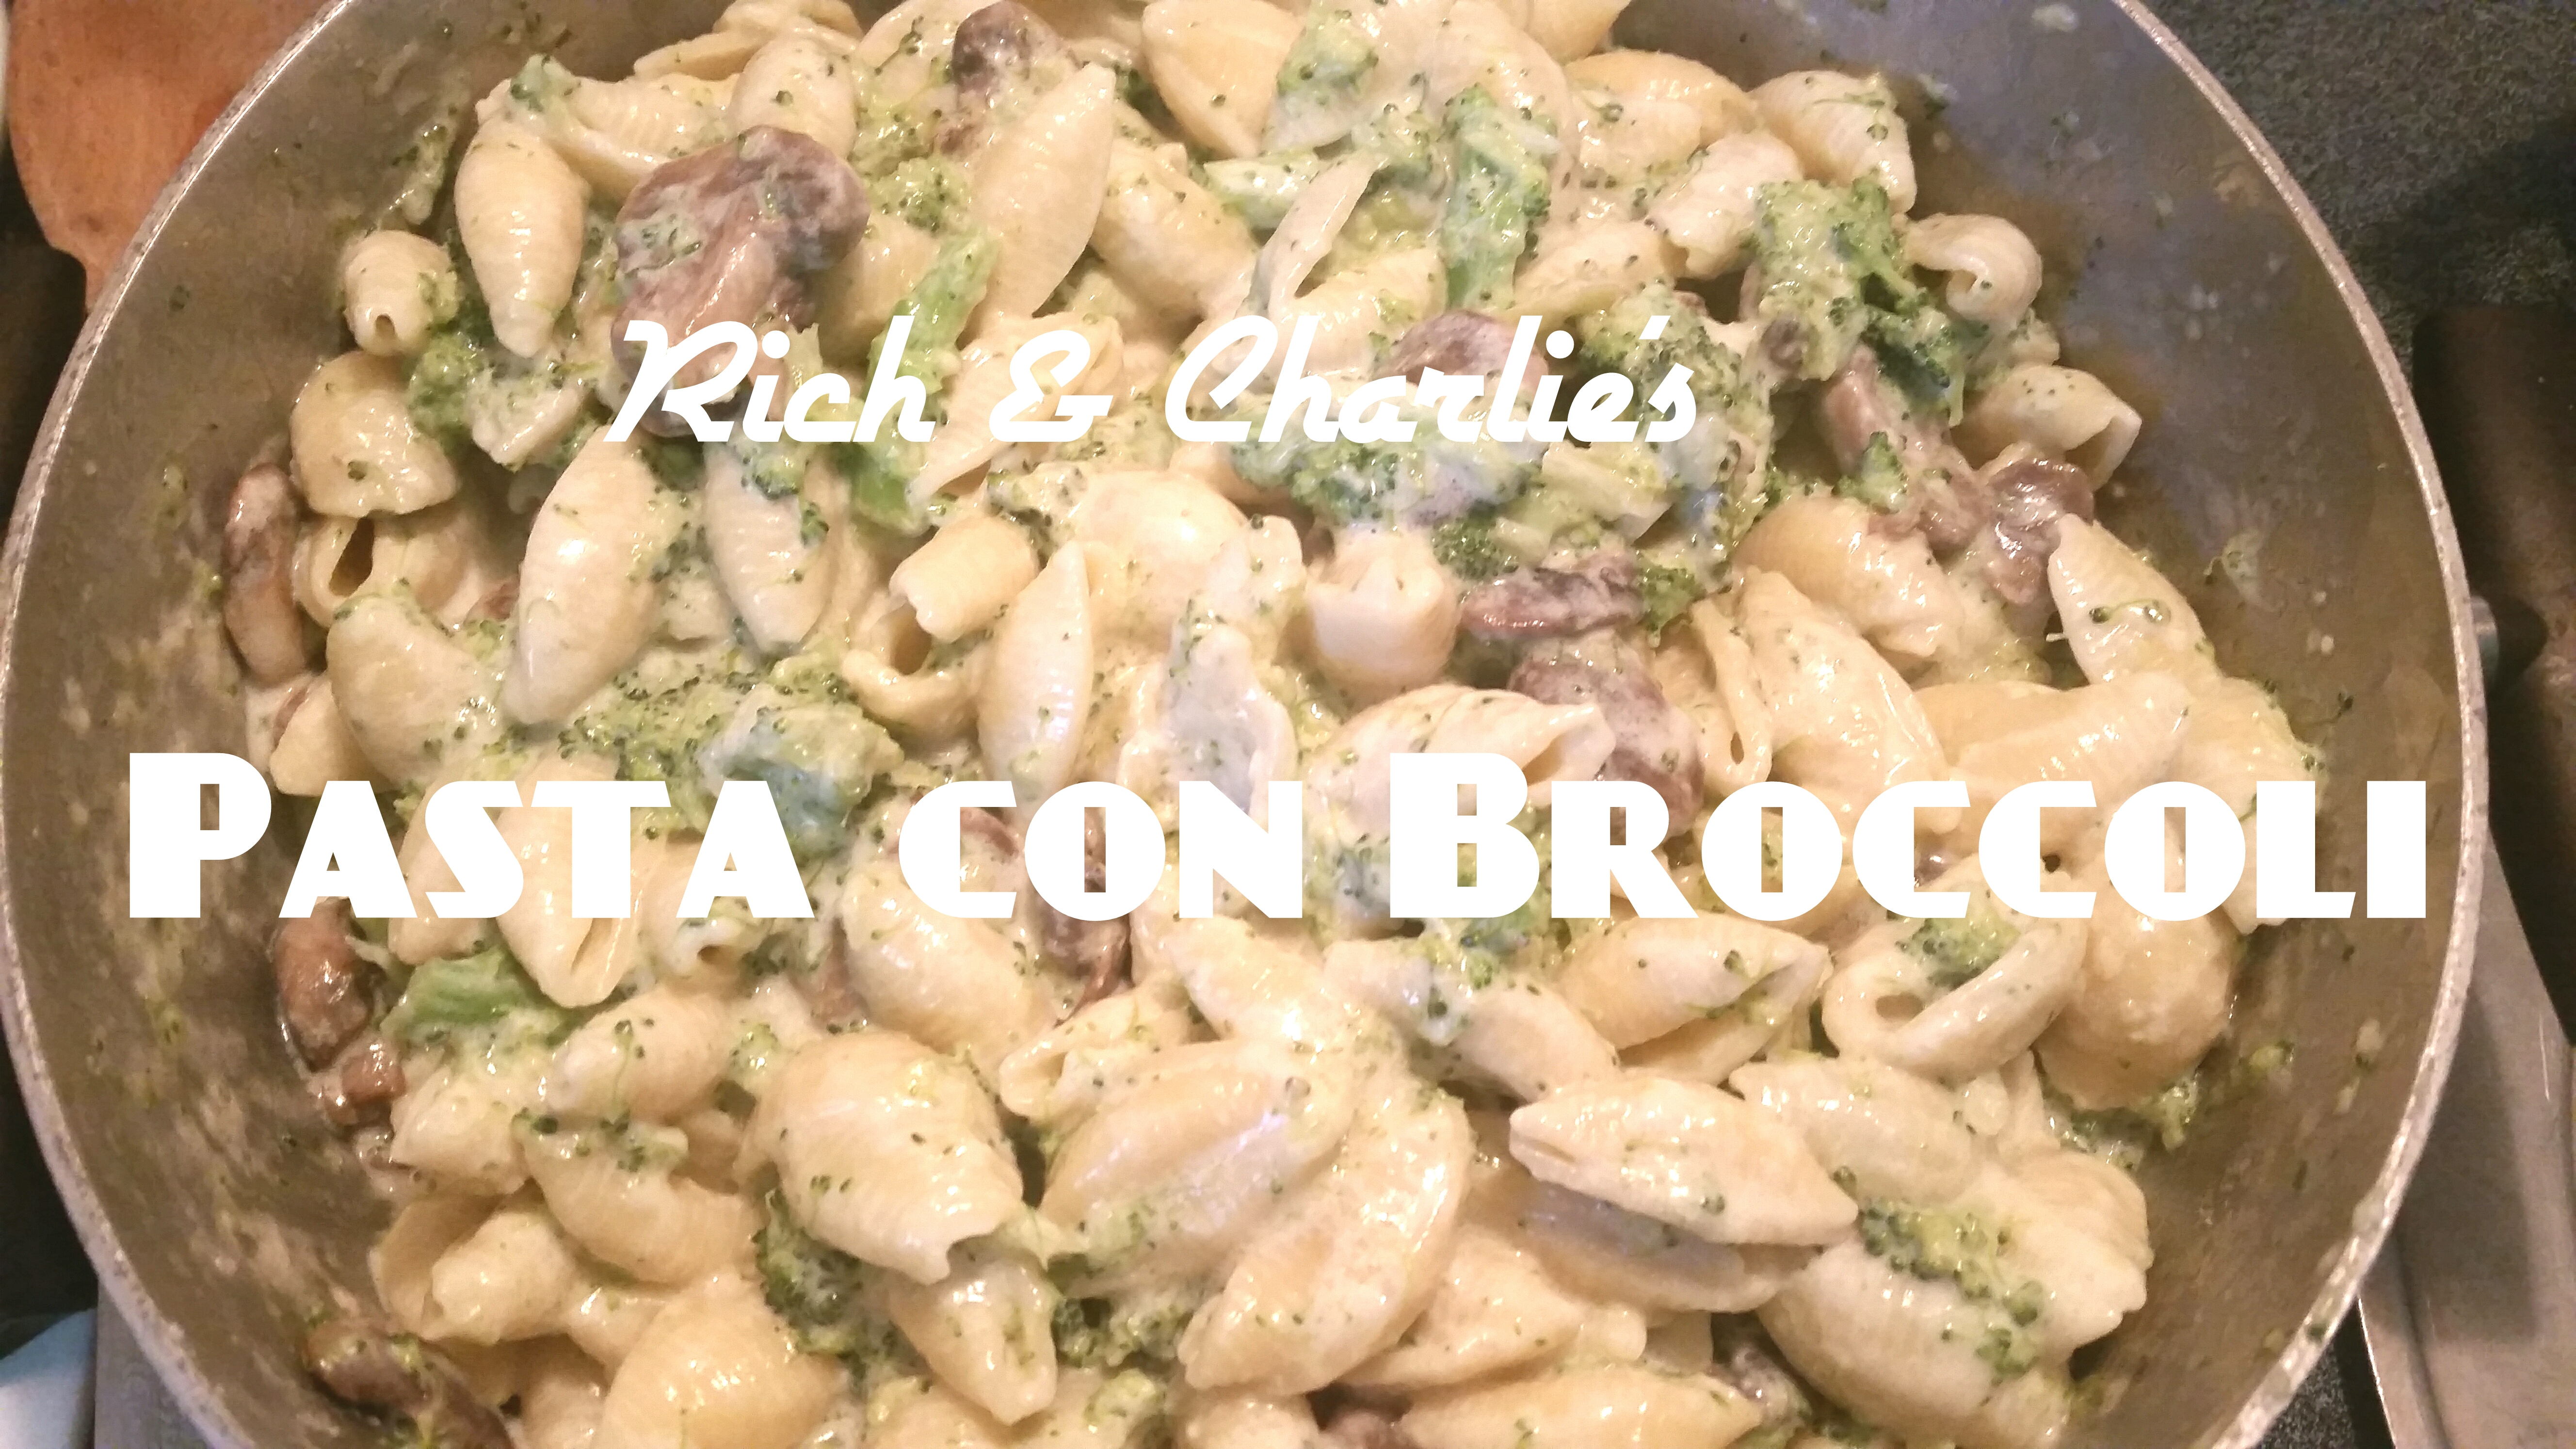 Rich & Charlie's Pasta con Broccoli